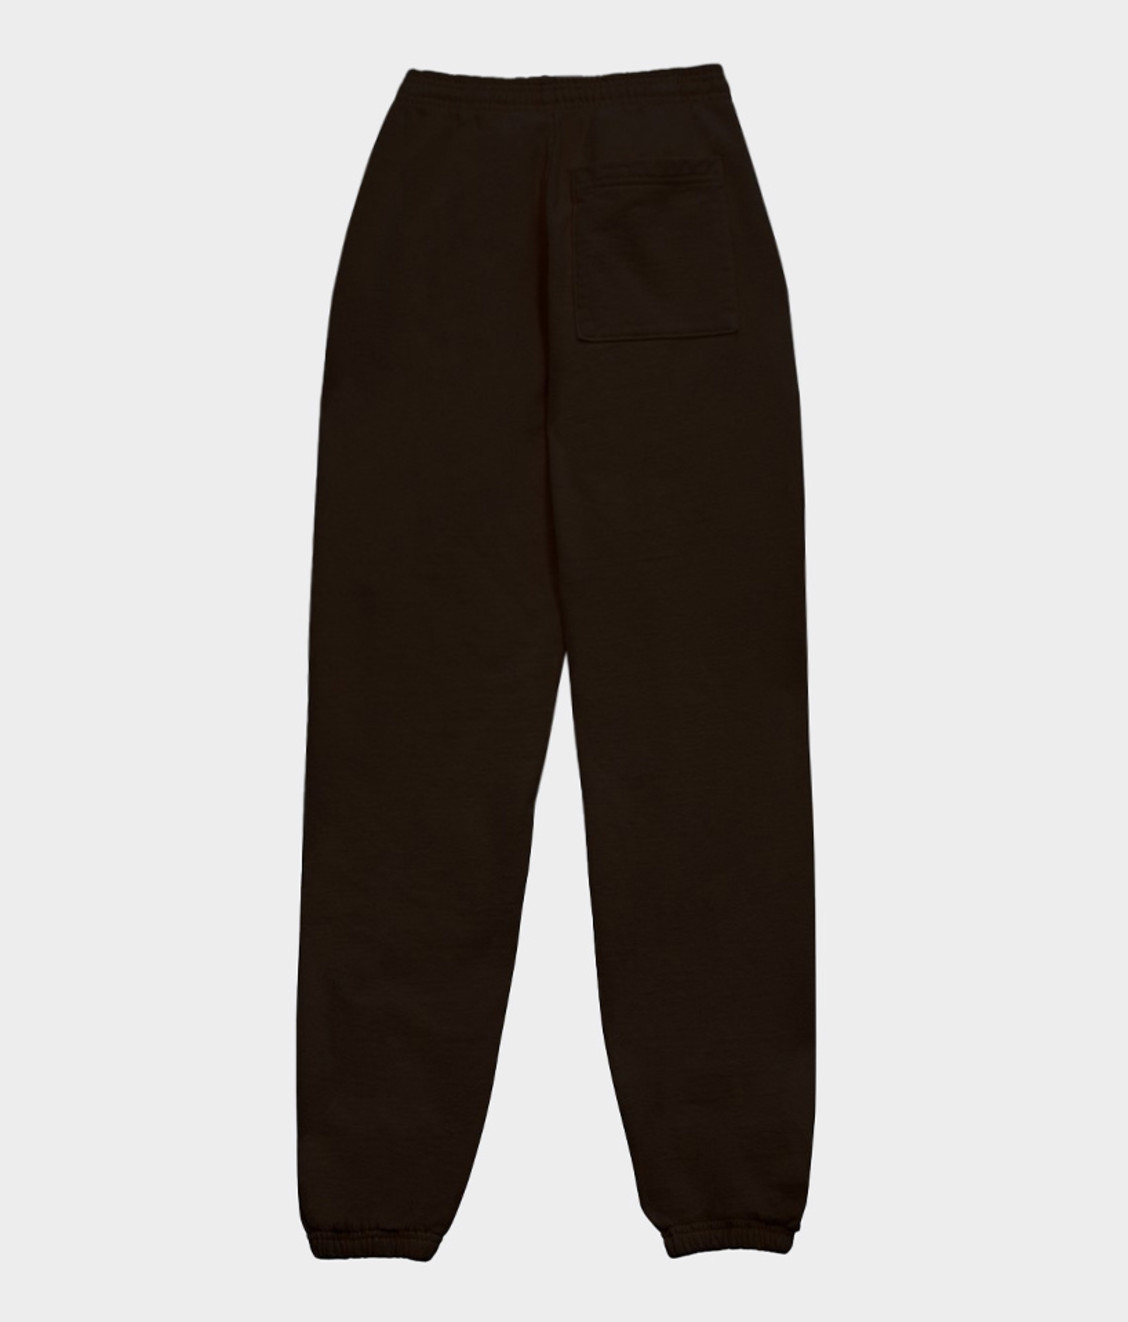 Sporty and Rich Sporty & Rich Serif Logo Sweatpant  Chocolate